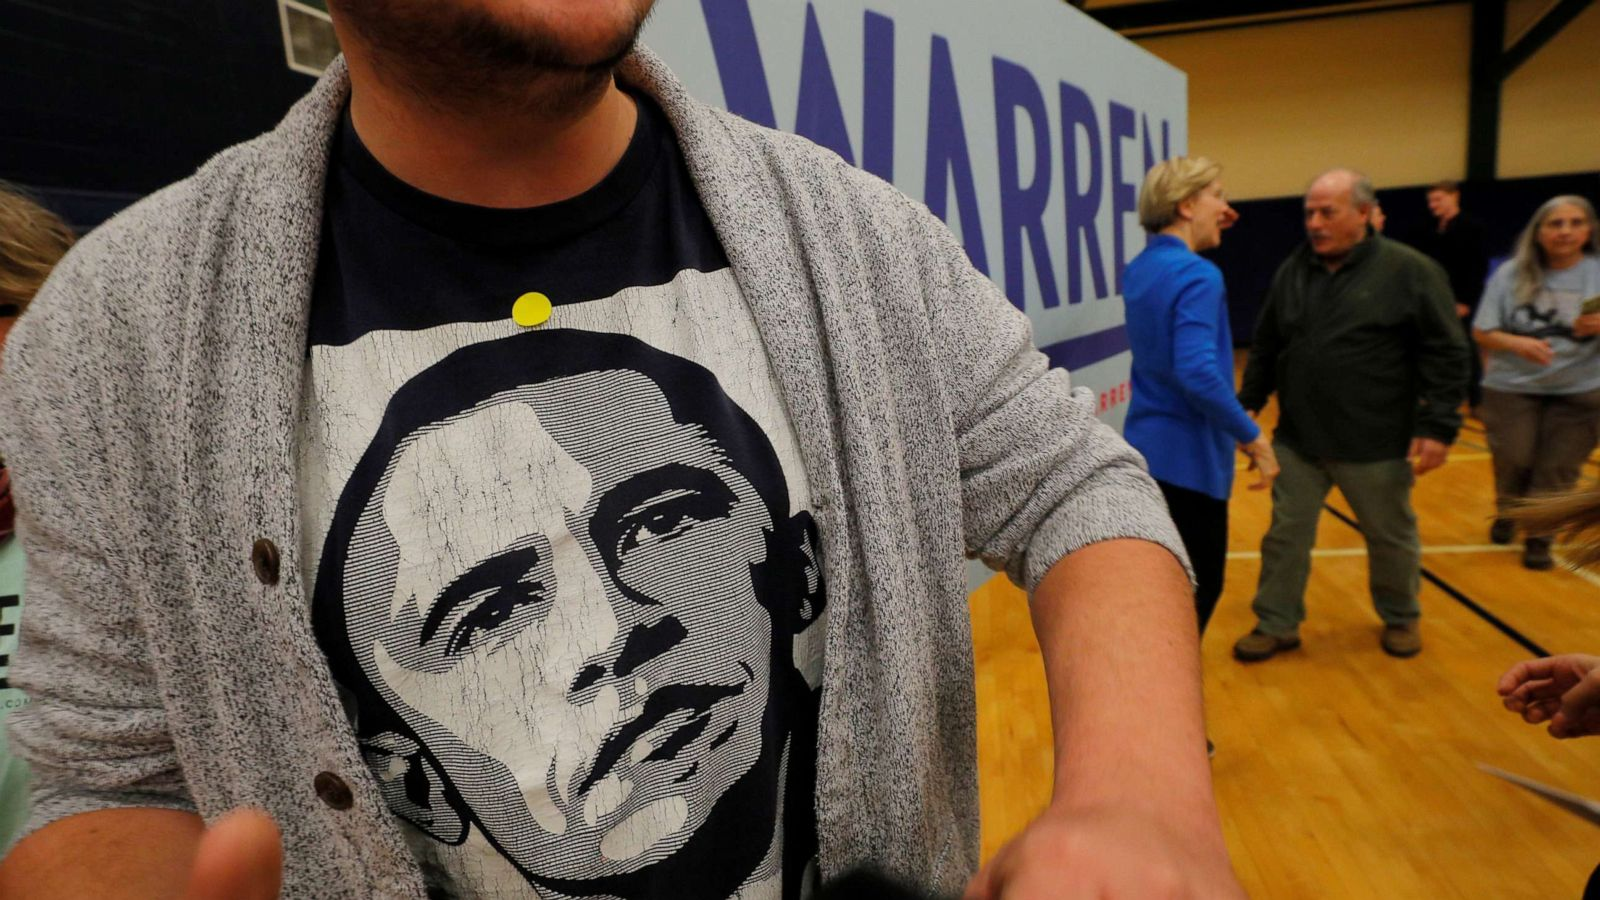 President Barack Obama Collage T-Shirt